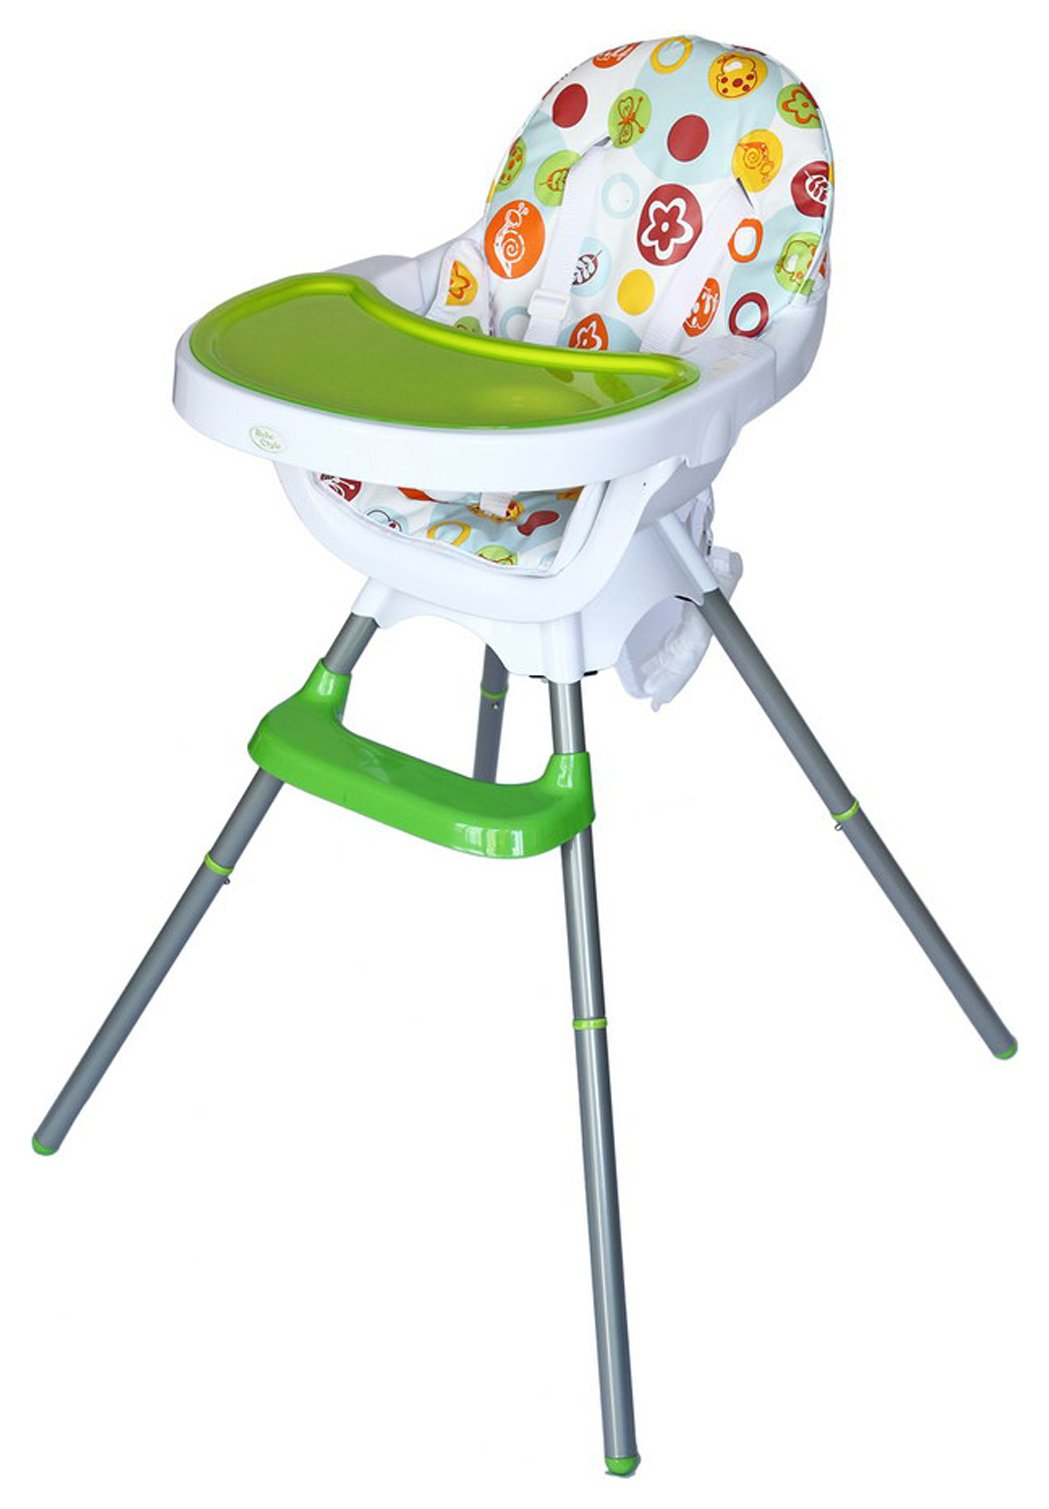 Image of BeBe - Style 3 in 1 - Highchair - Green